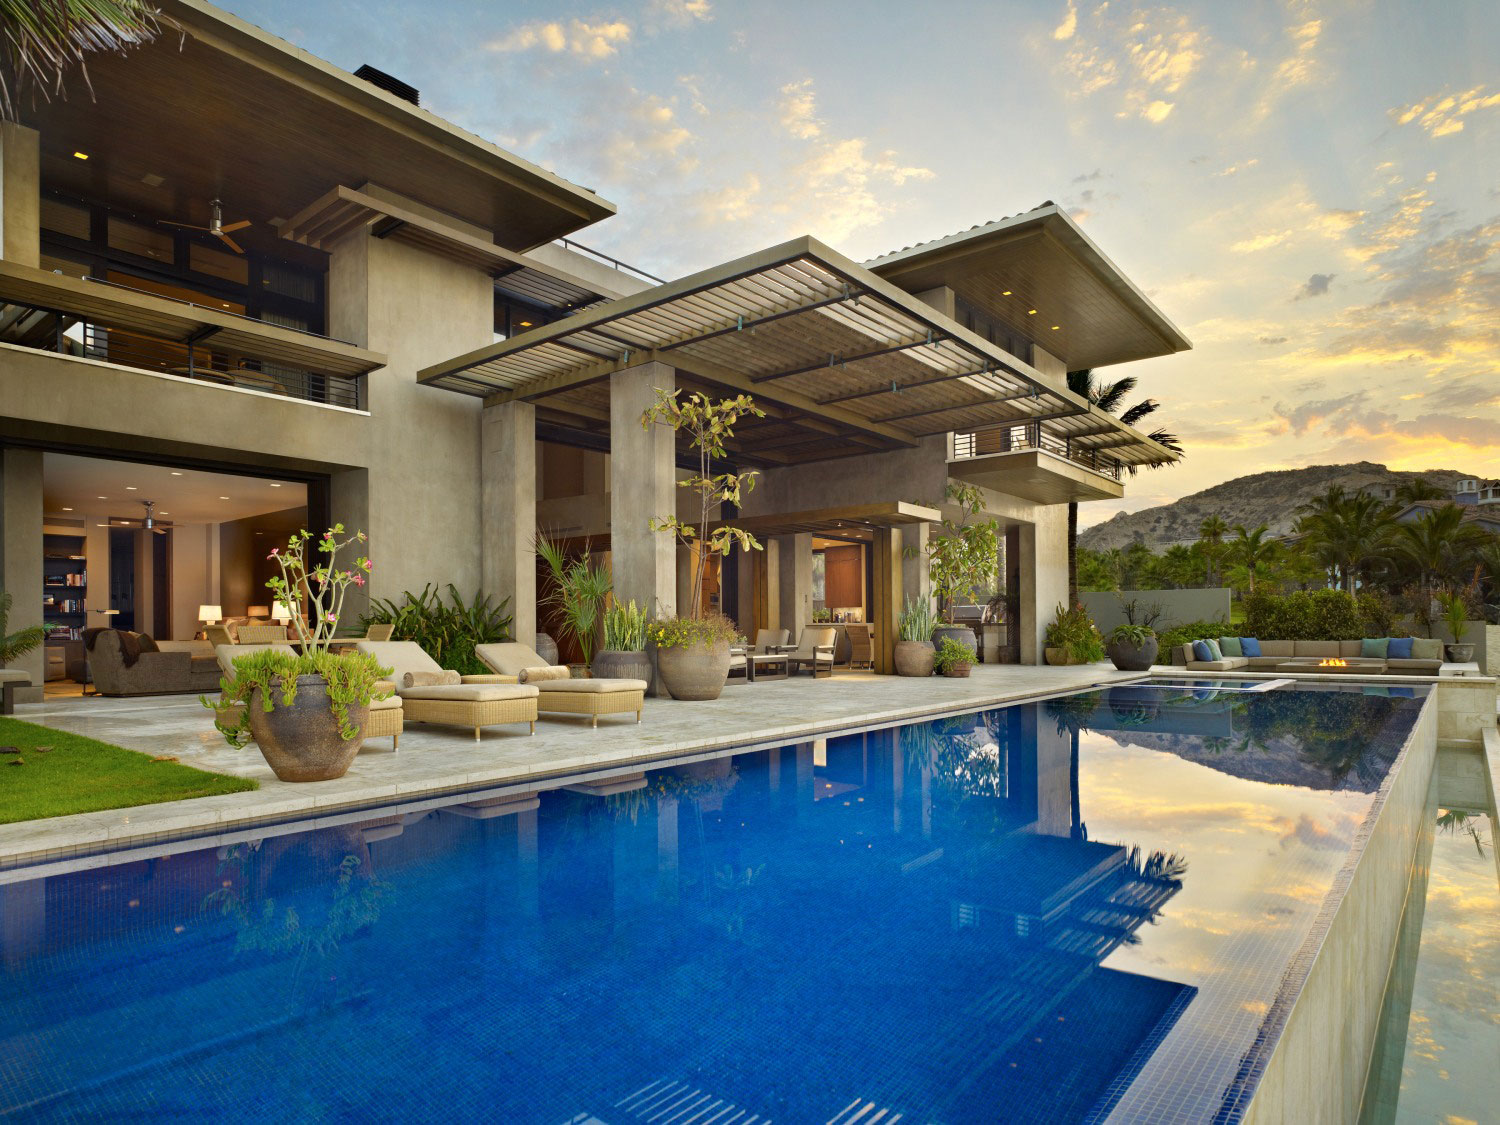 Infinity Pool, Terrace, Beachfront Home in Cabo San Lucas, Mexico